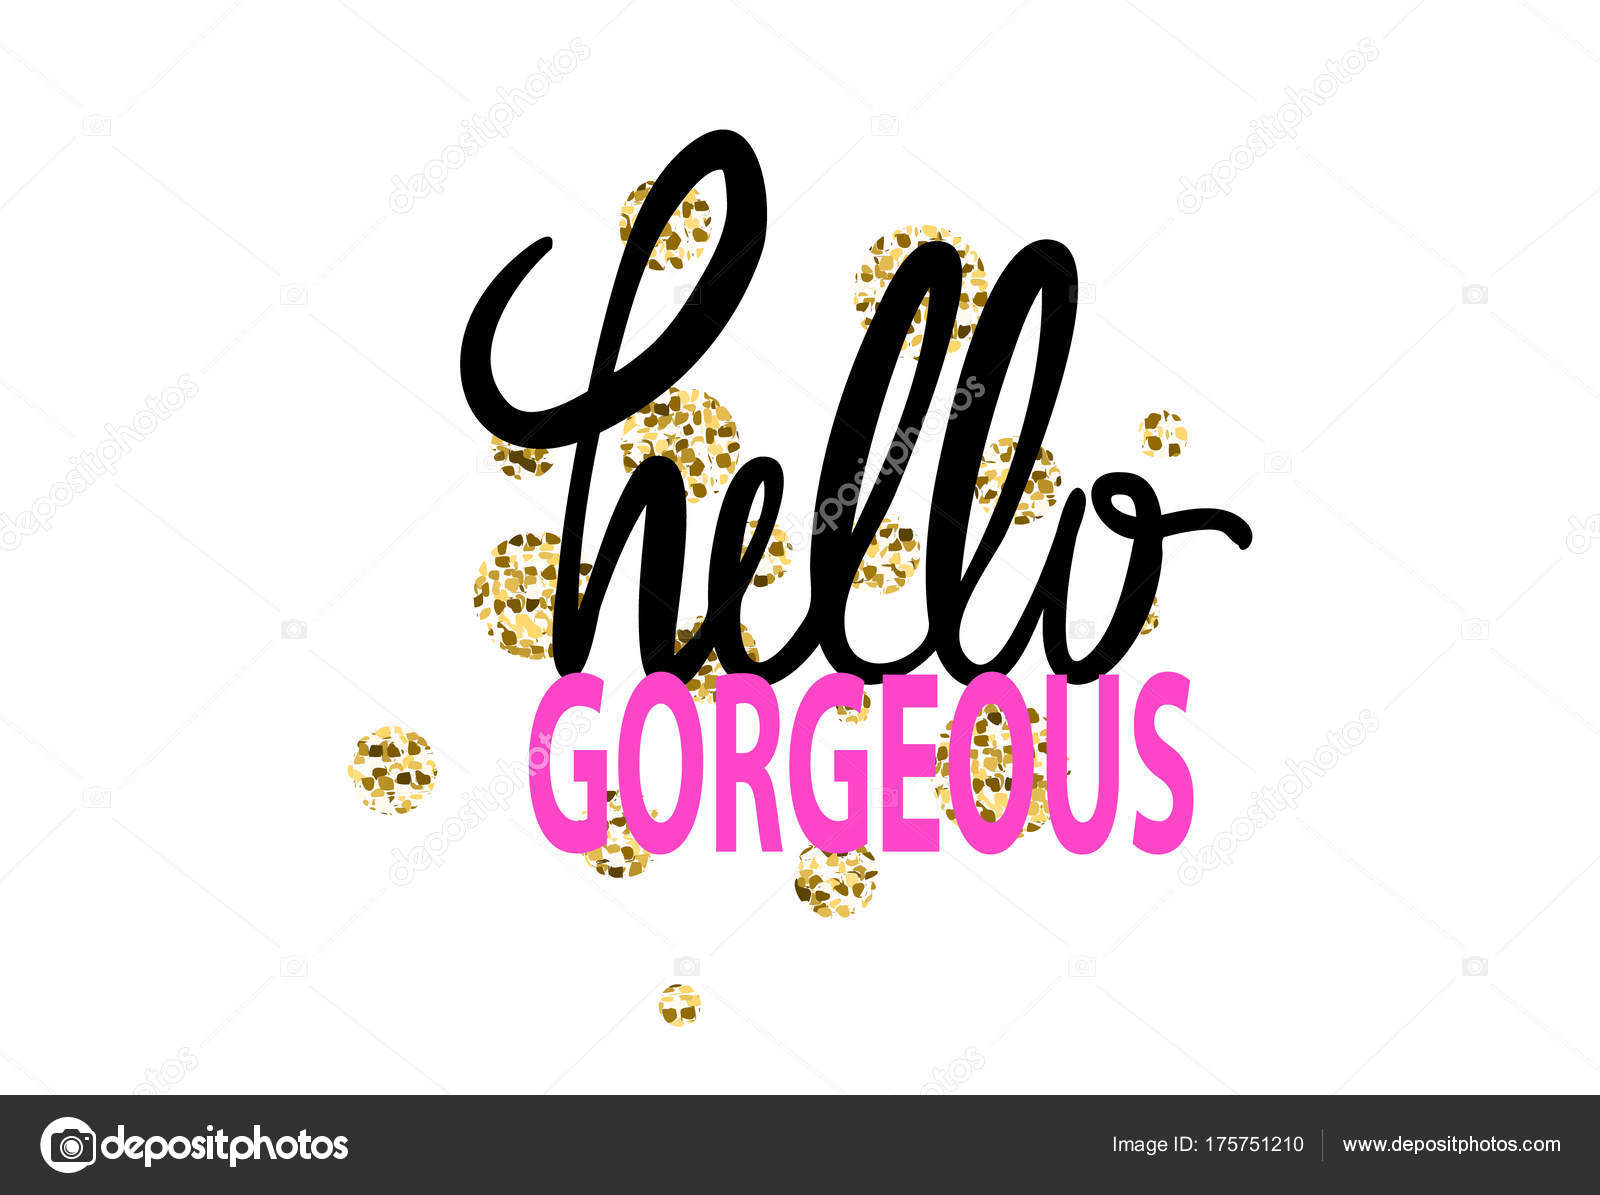 Hello gorgeous colorful graffiti with words fulfilled in different beautiful fonts vector illustration with drawing isolated on white background vector